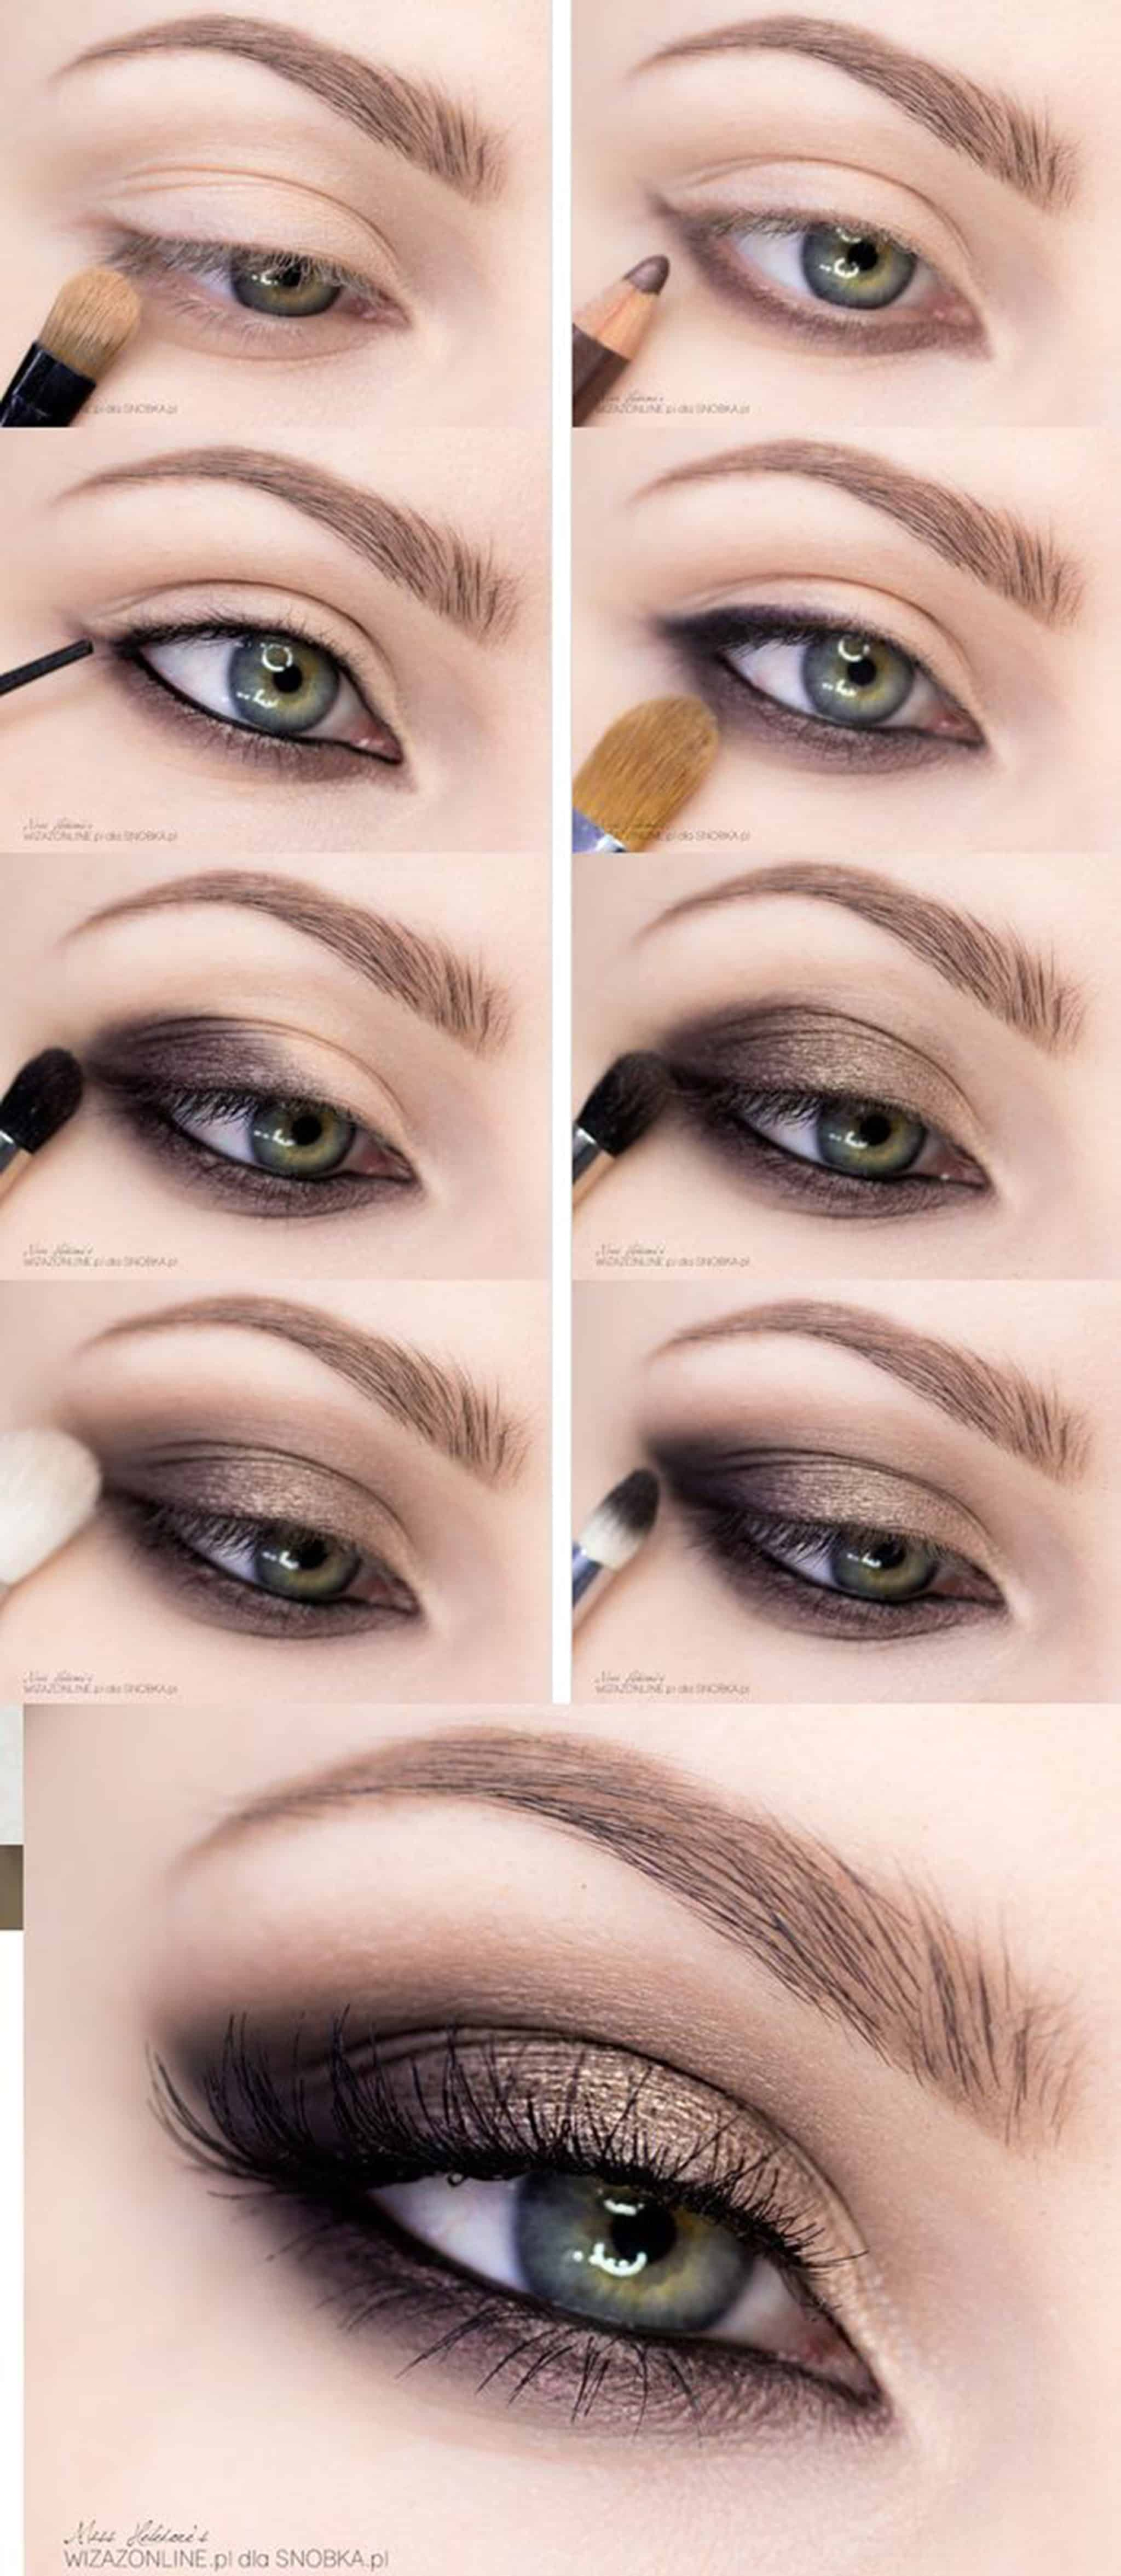 eyeshadow step by step instructions